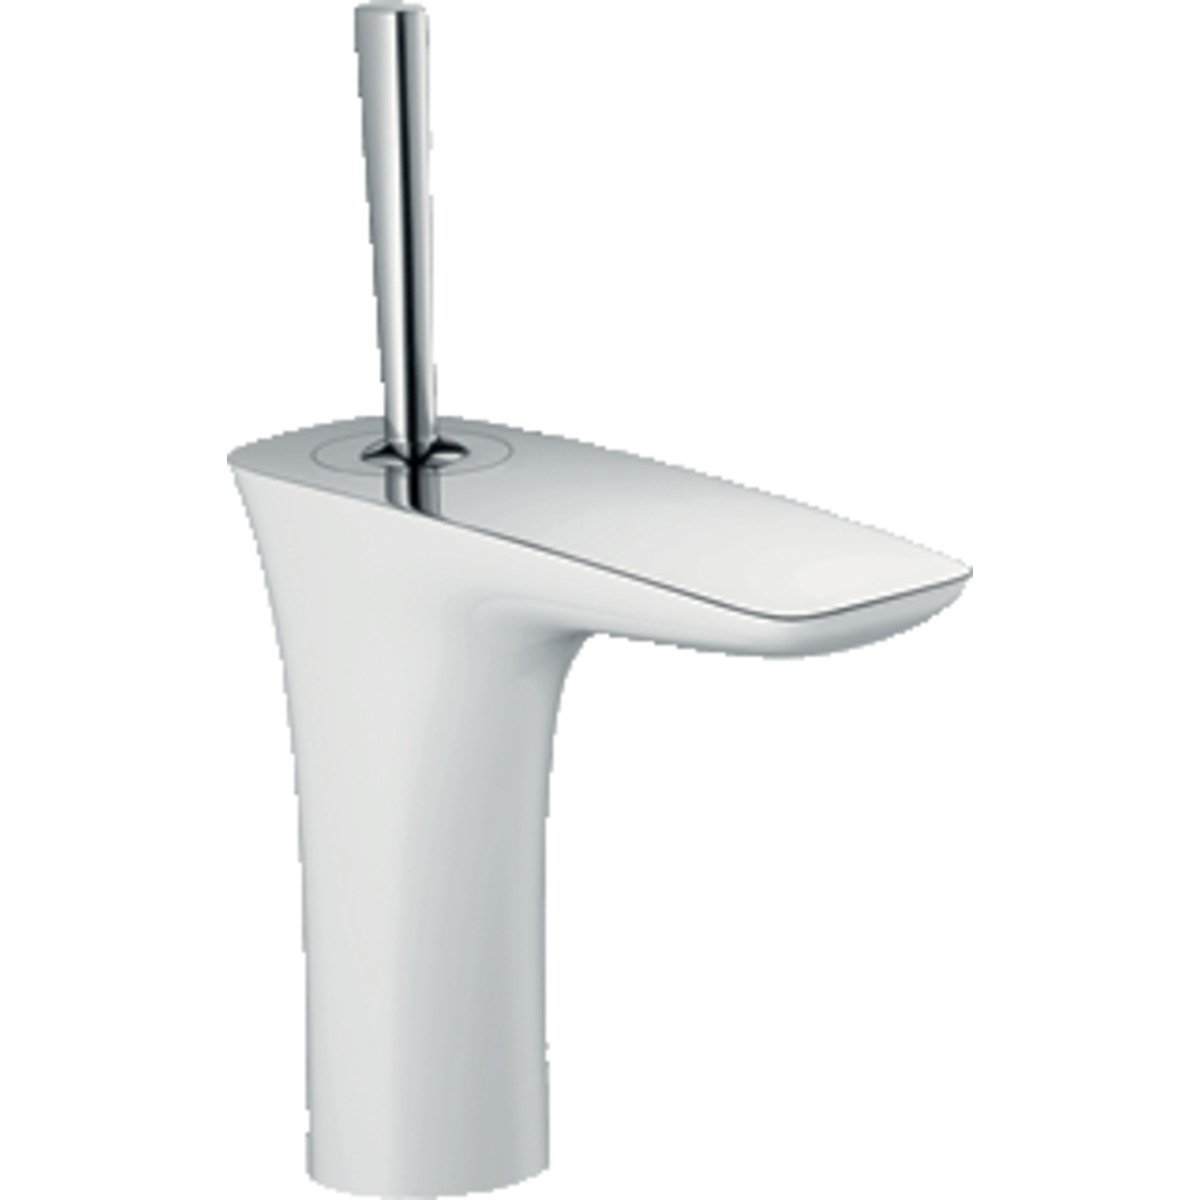 hansgrohe puravida robinet pour lavabo avec bonde chrom blanc 15074400. Black Bedroom Furniture Sets. Home Design Ideas